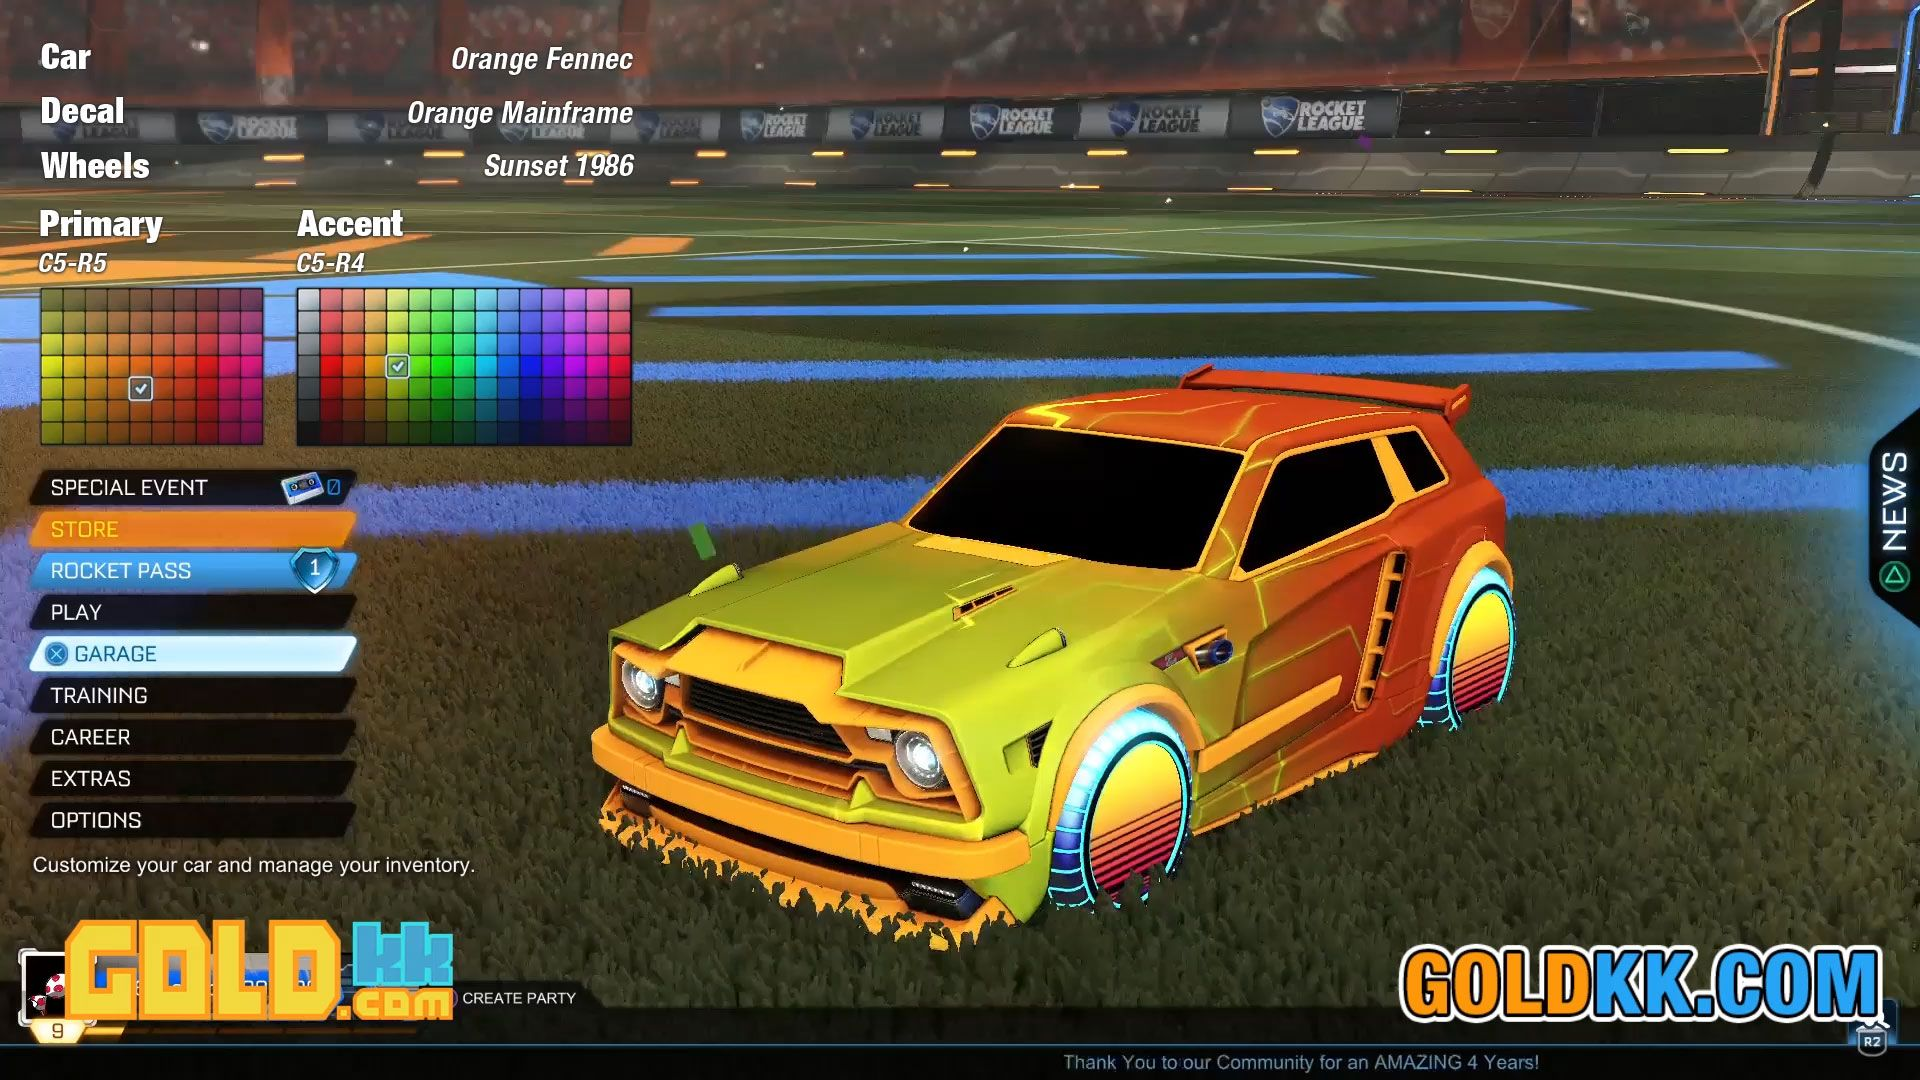 Car Orange Fennec Decal Orange Mainframe Wheels Sunset